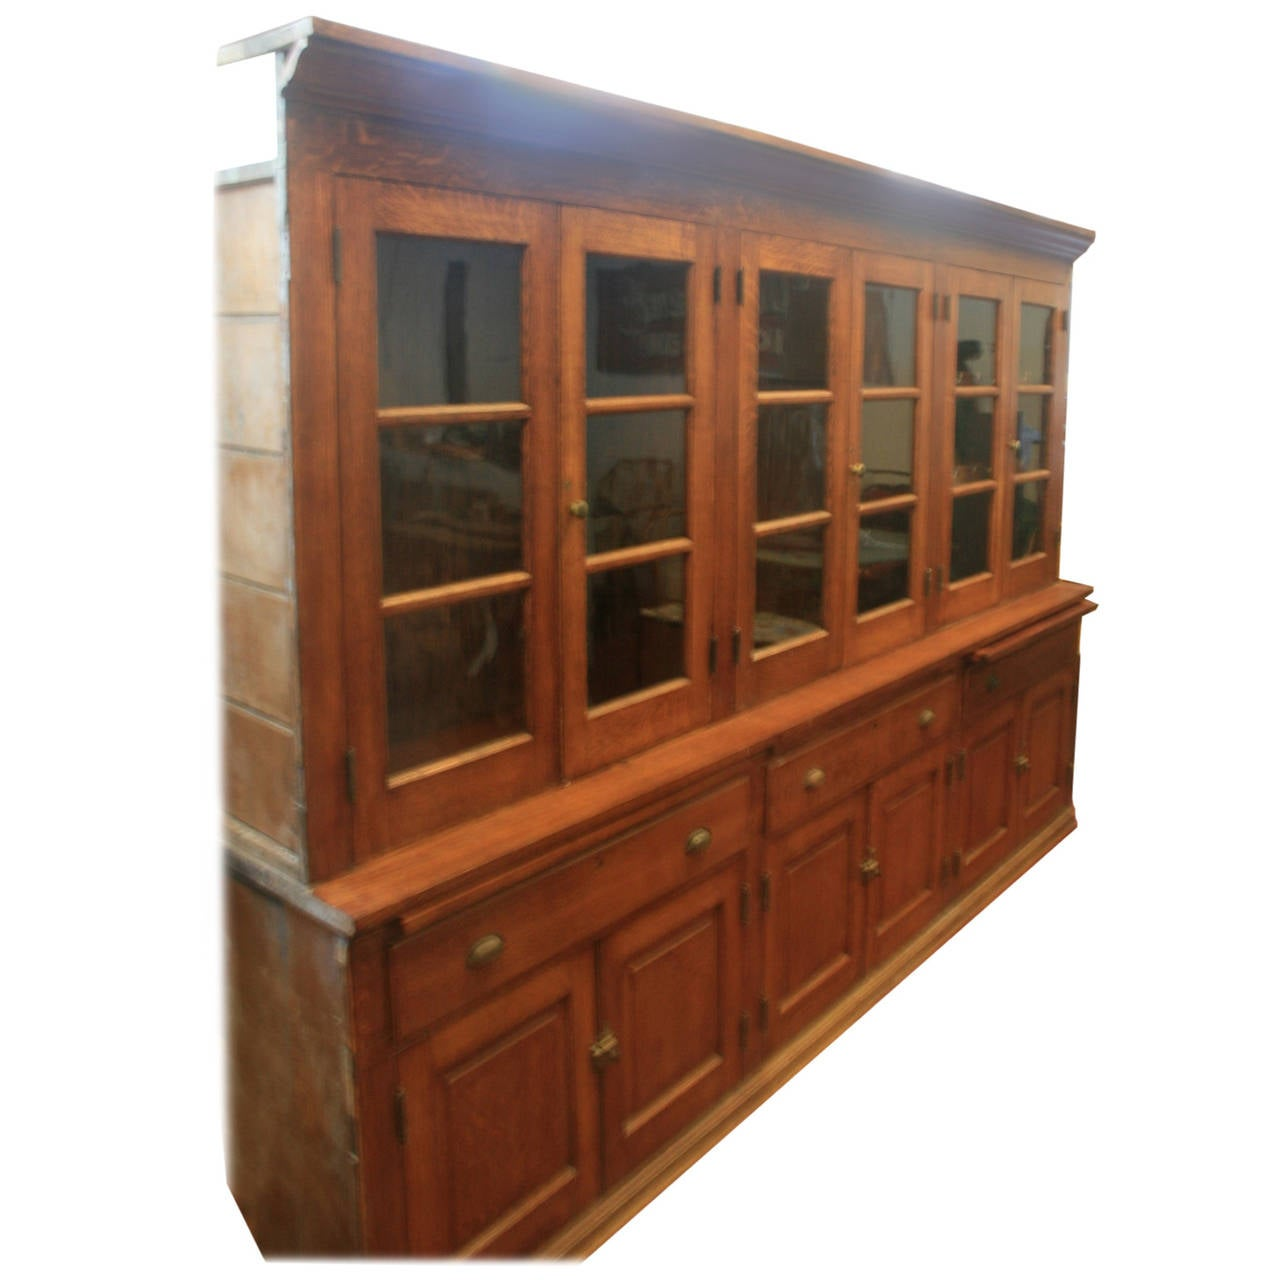 Giant 19th century butler 39 s pantry cabinet at 1stdibs for Pantry cabinet